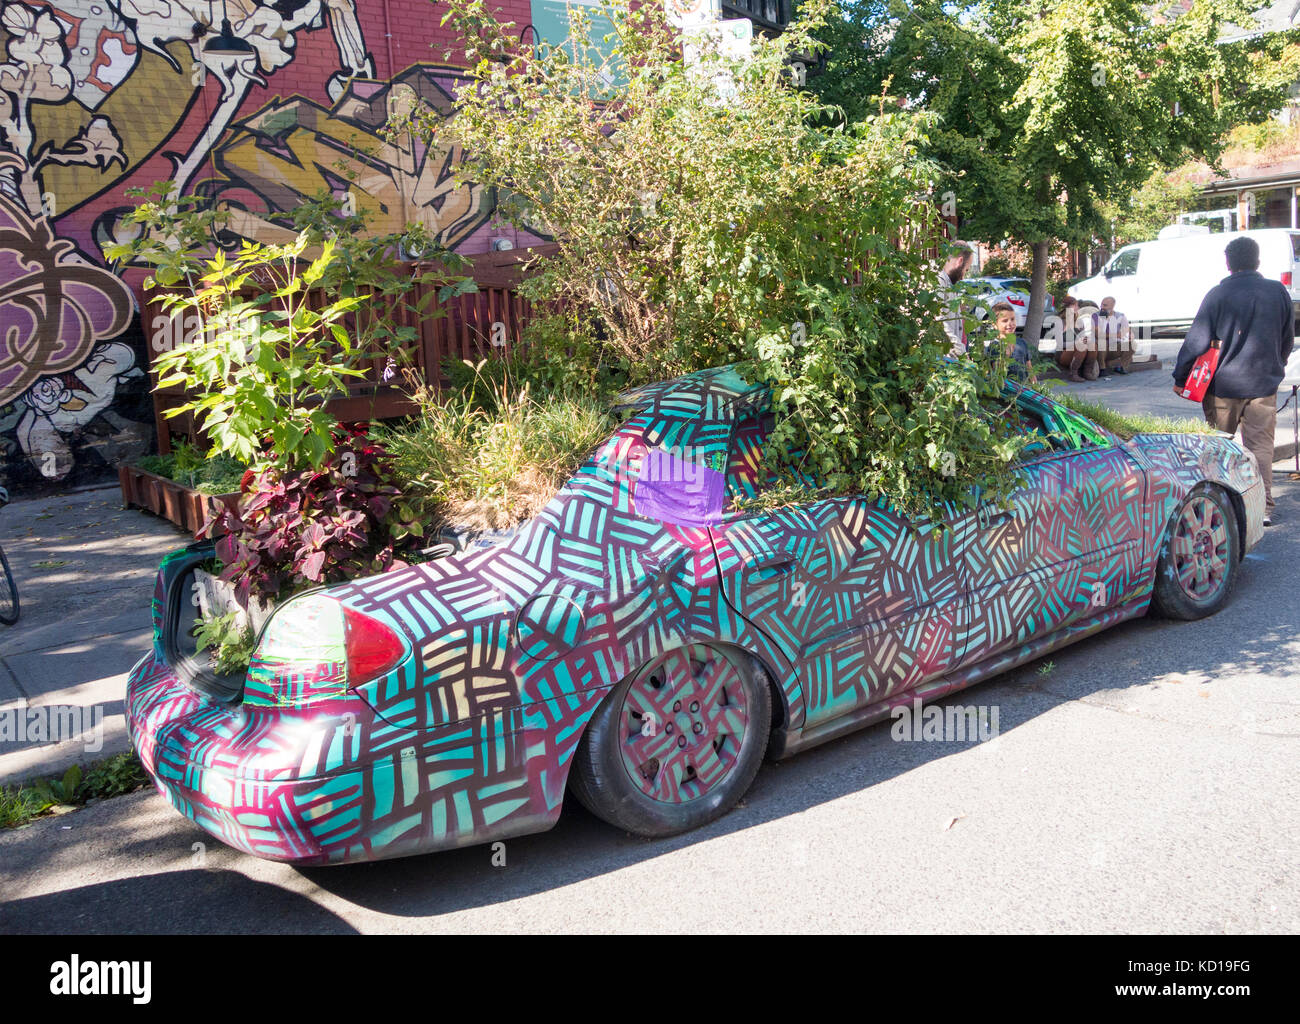 the-garden-car-parked-on-augusta-street-in-kensington-market-in-downtown-KD19FG.jpg